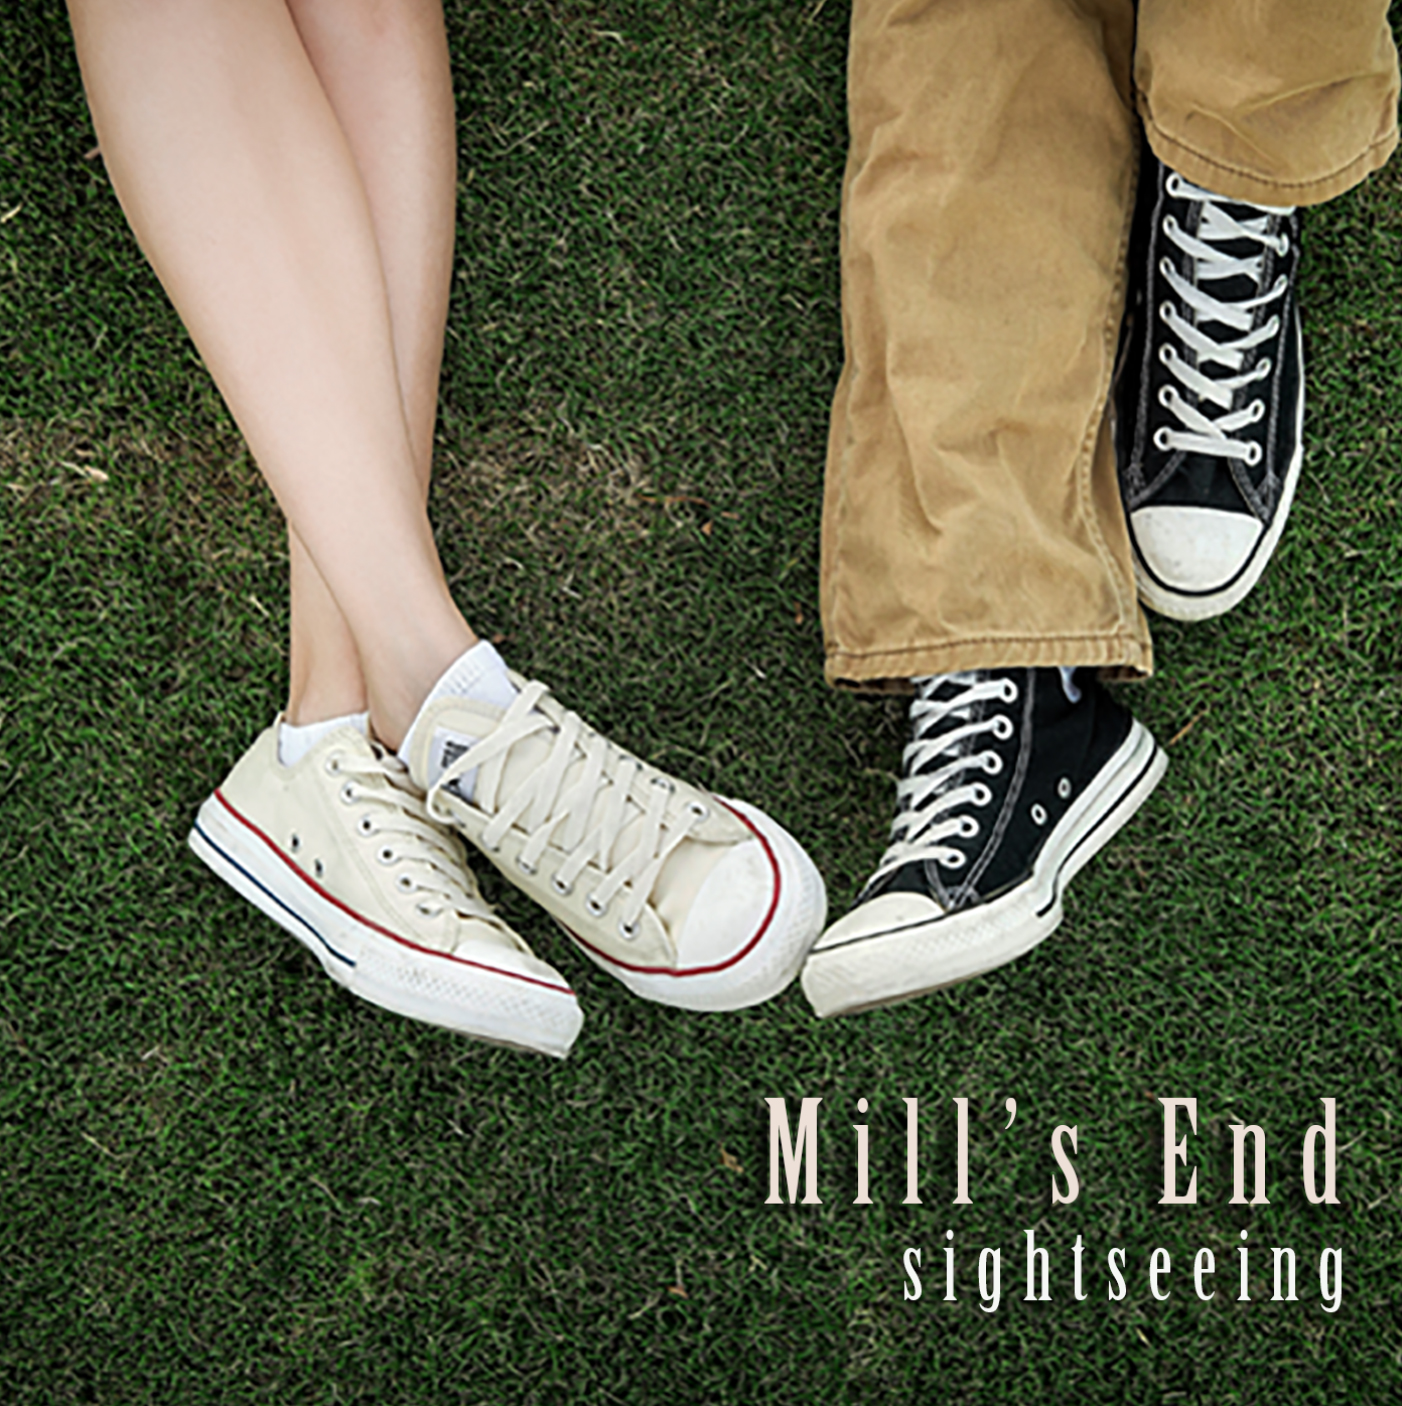 Mill's End - Sightseeing (single)